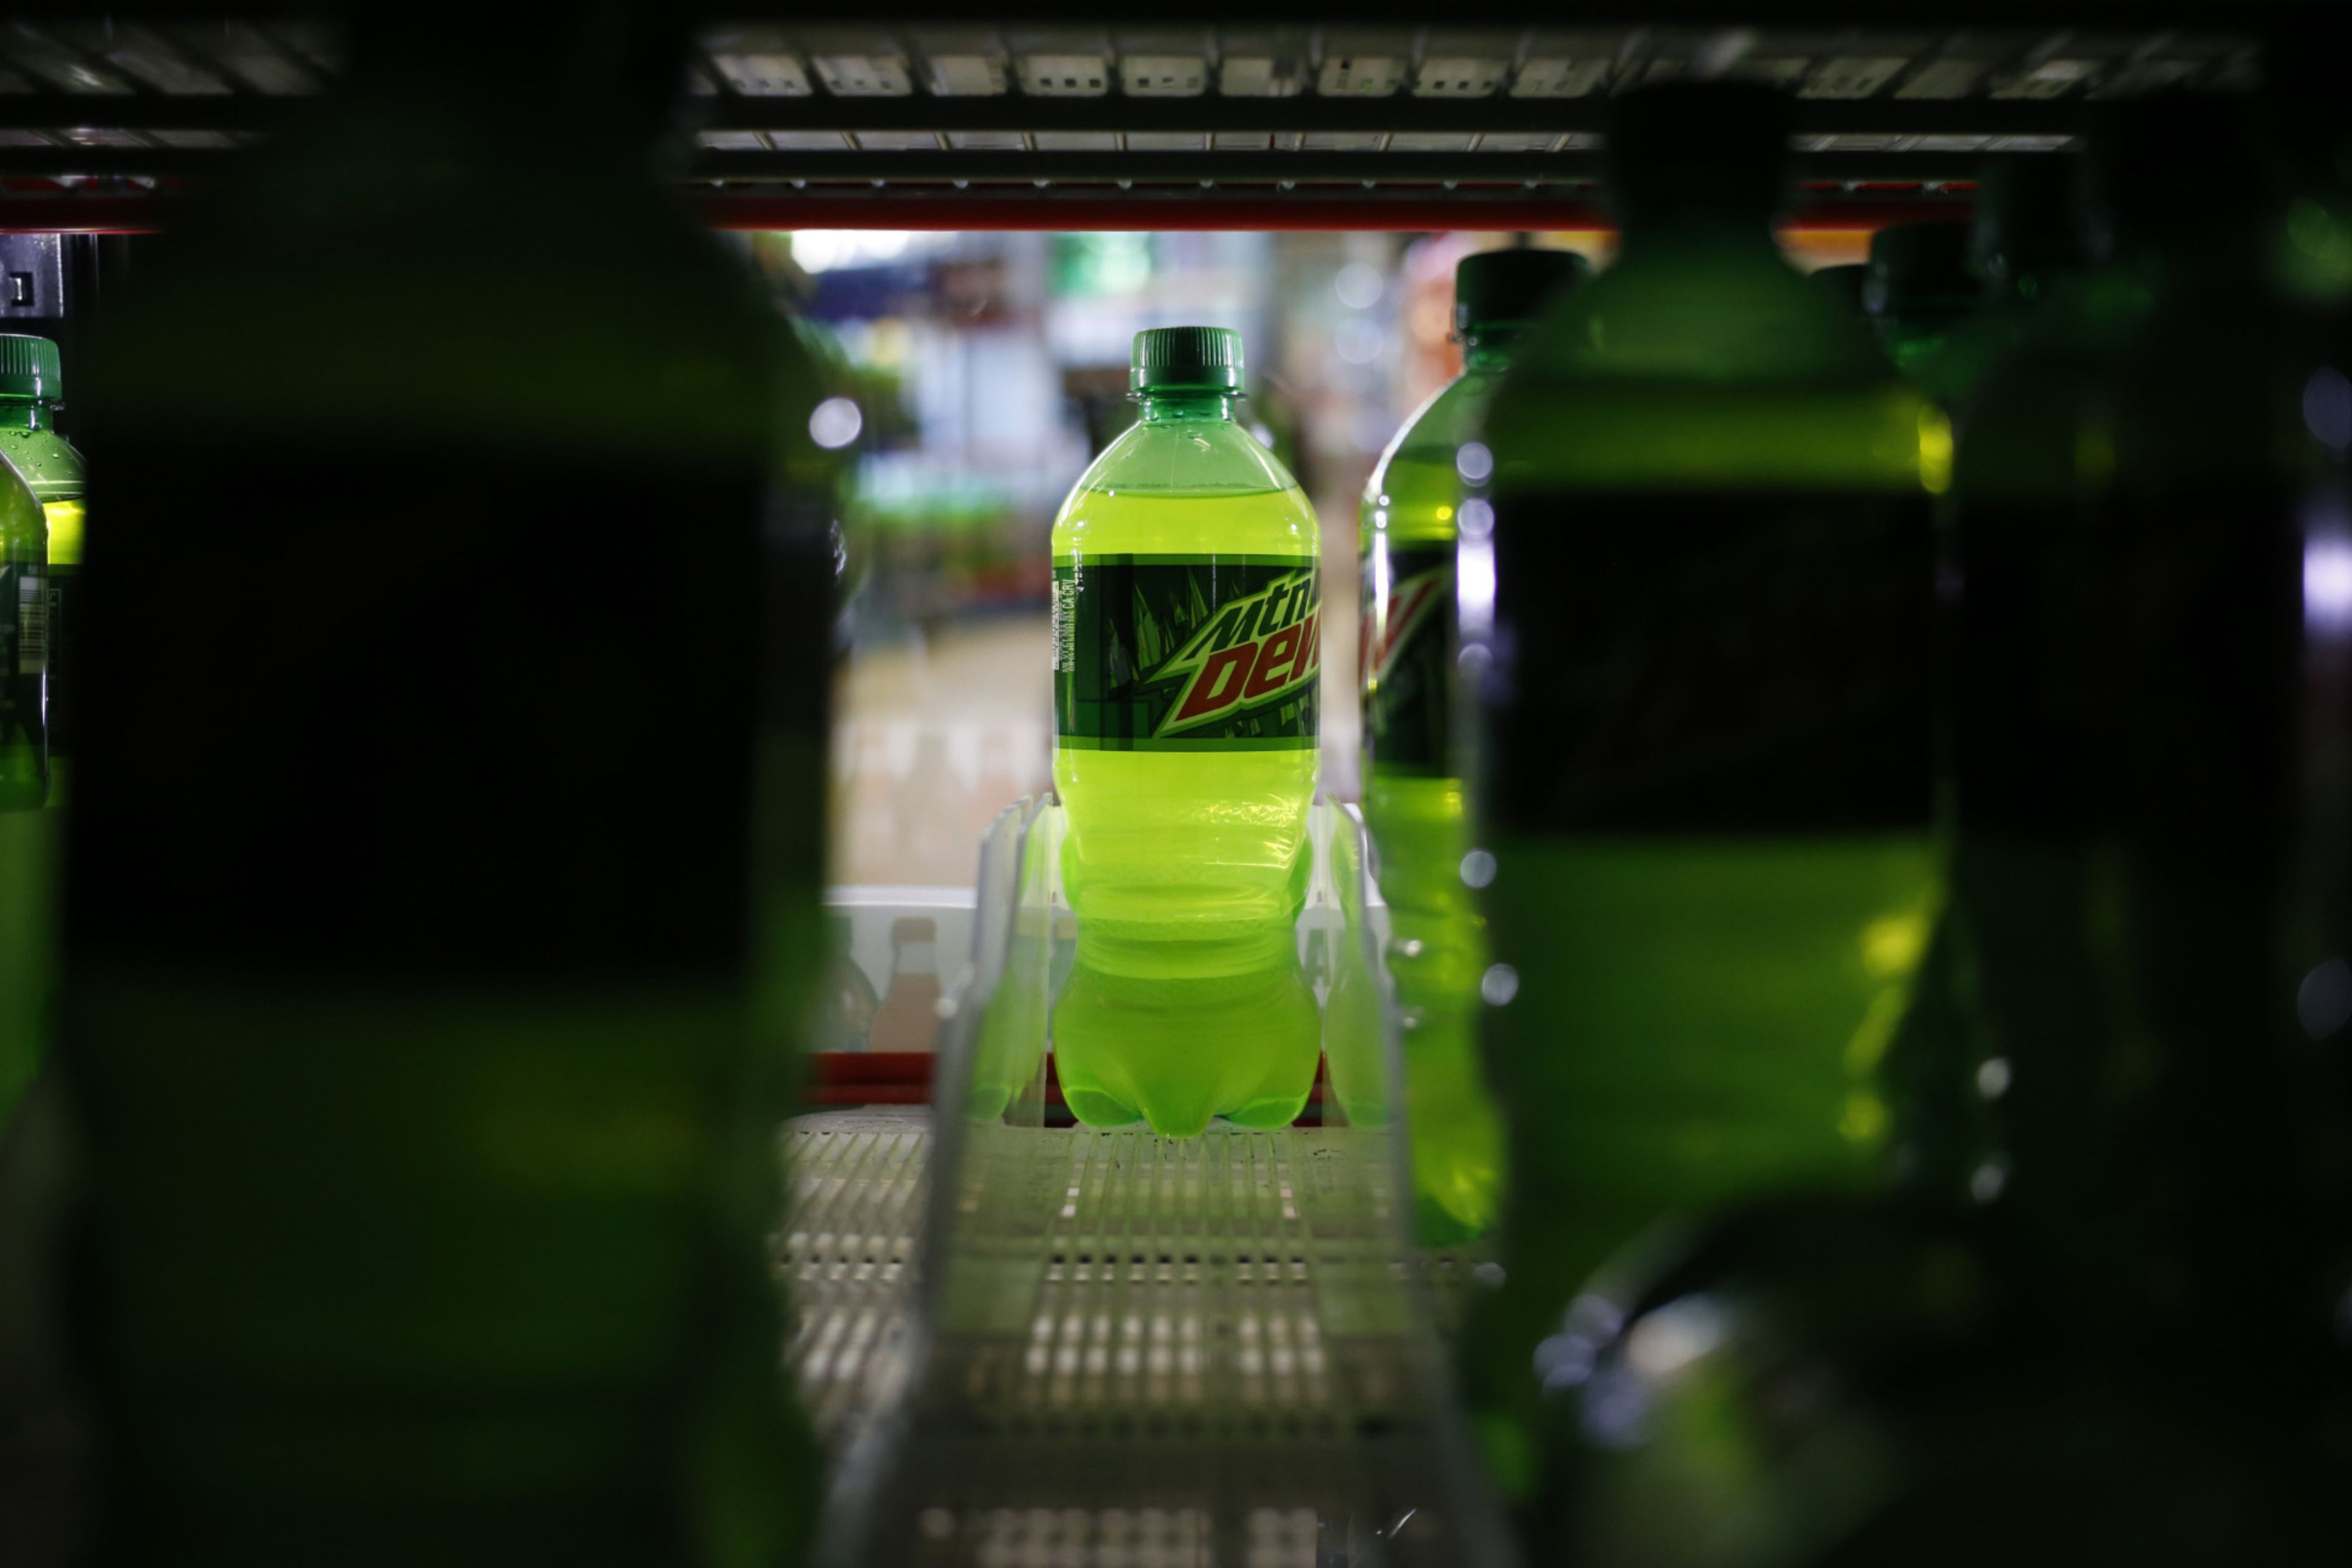 Mtn Dew is back in the Super Bowl